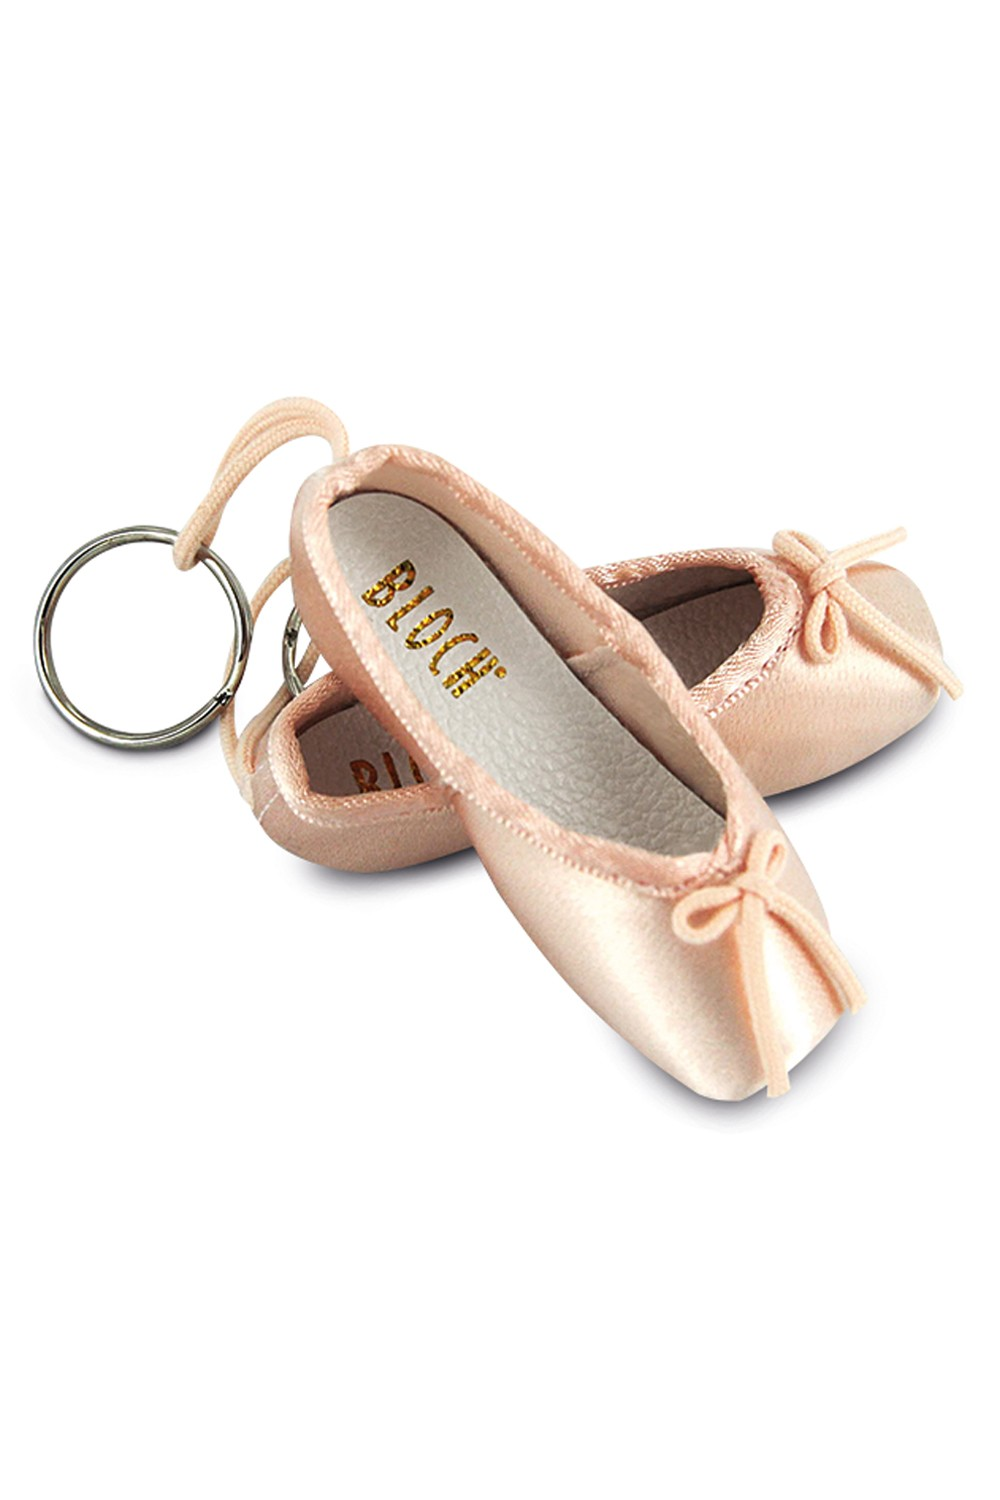 Mini Pointe Shoe Key Ring 6 Pack Dance Shoes Accessories